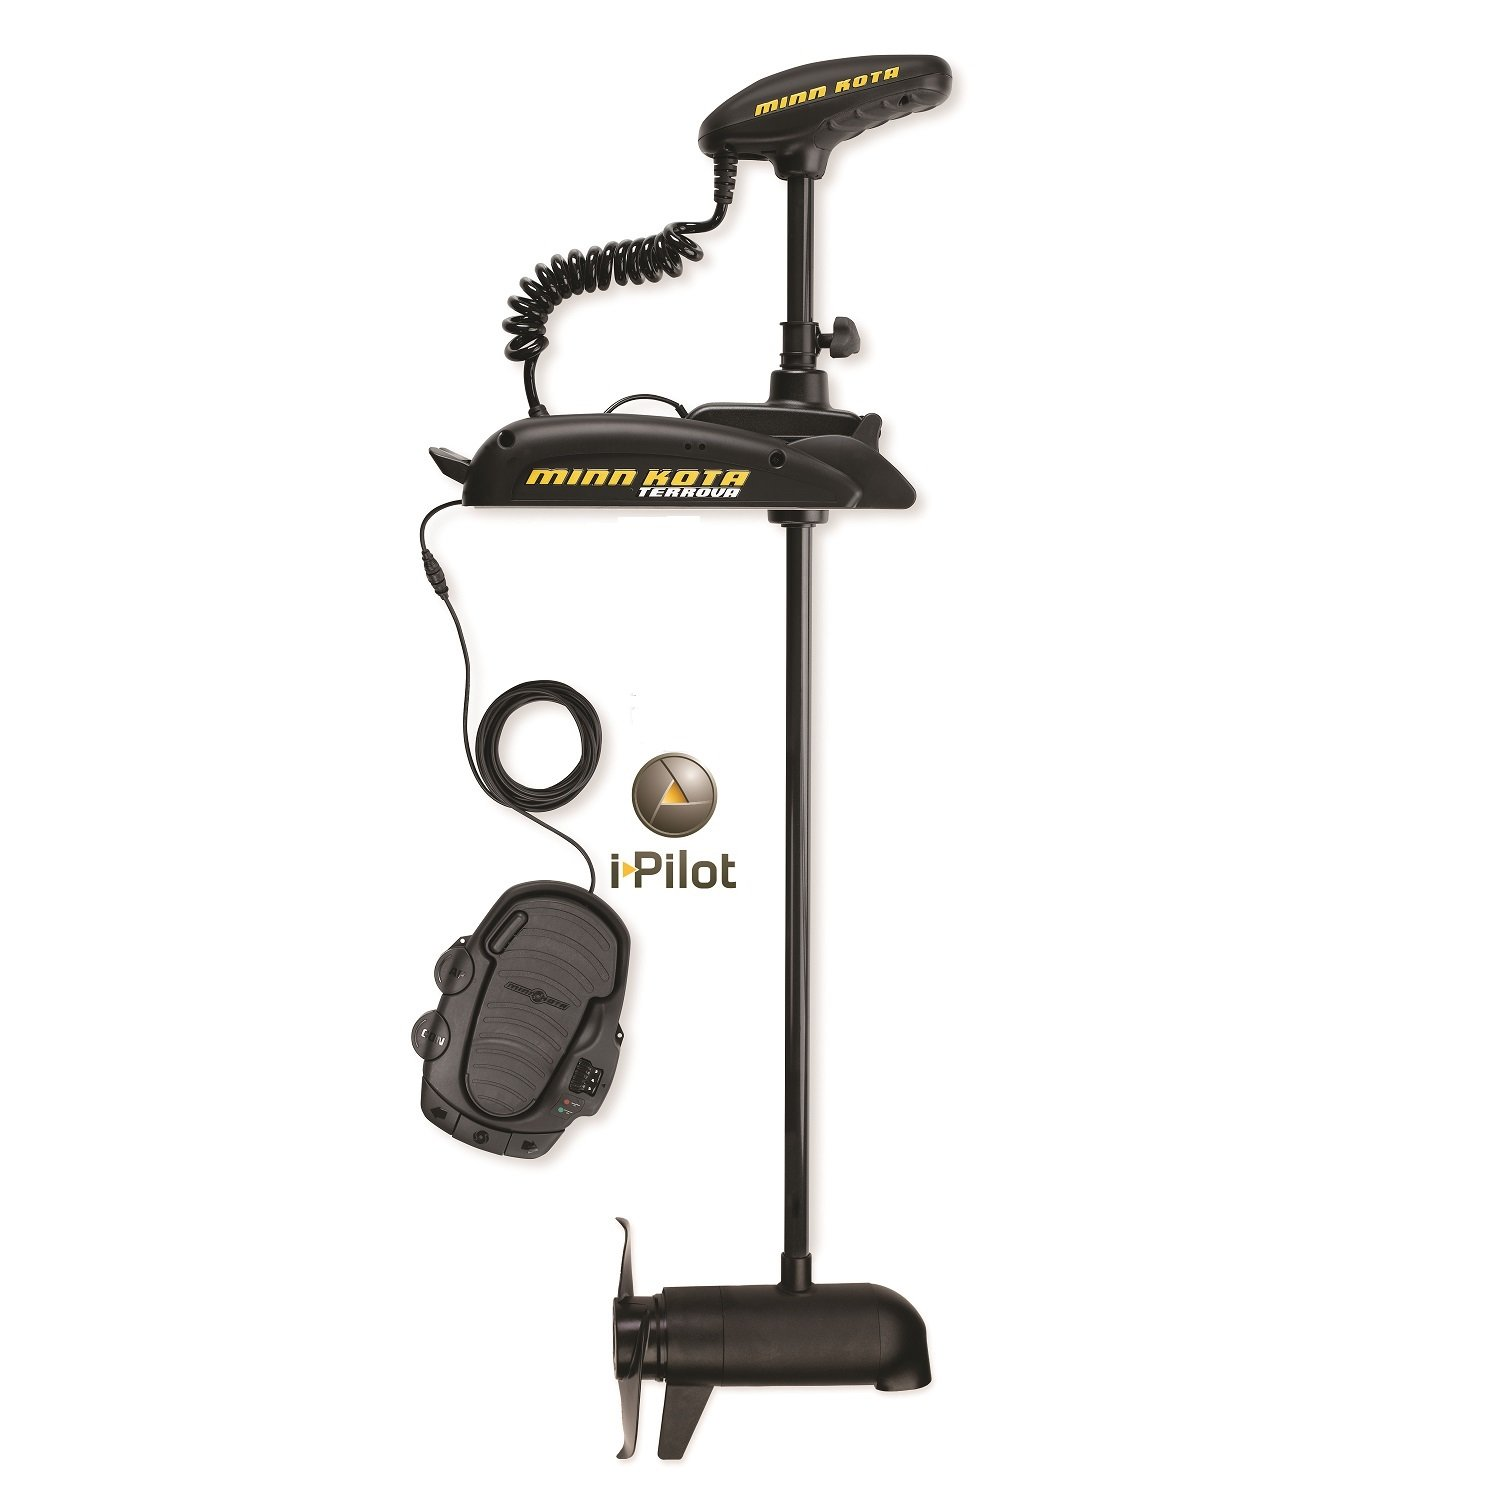 Minn Kota Terrova 112 Us2 Motor With I Pilot Black 24v Trolling General Discussion Forum Indepth Outdoors Medical Support Hose And Socks Sports